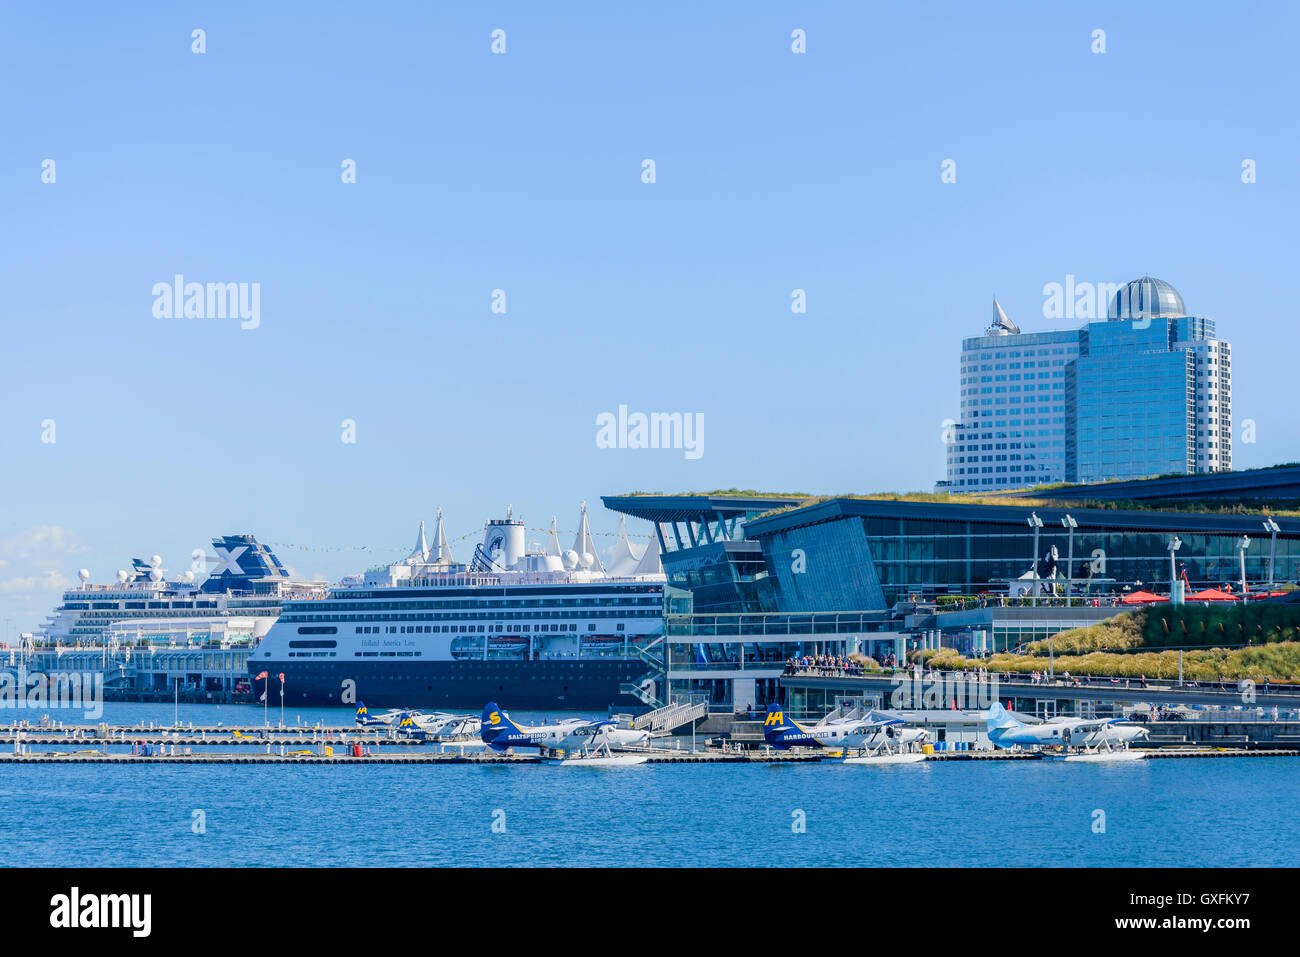 Float plane and cruise ship terminals, Coal Harbour, Vancouver, British Columbia, Canada - Stock Image